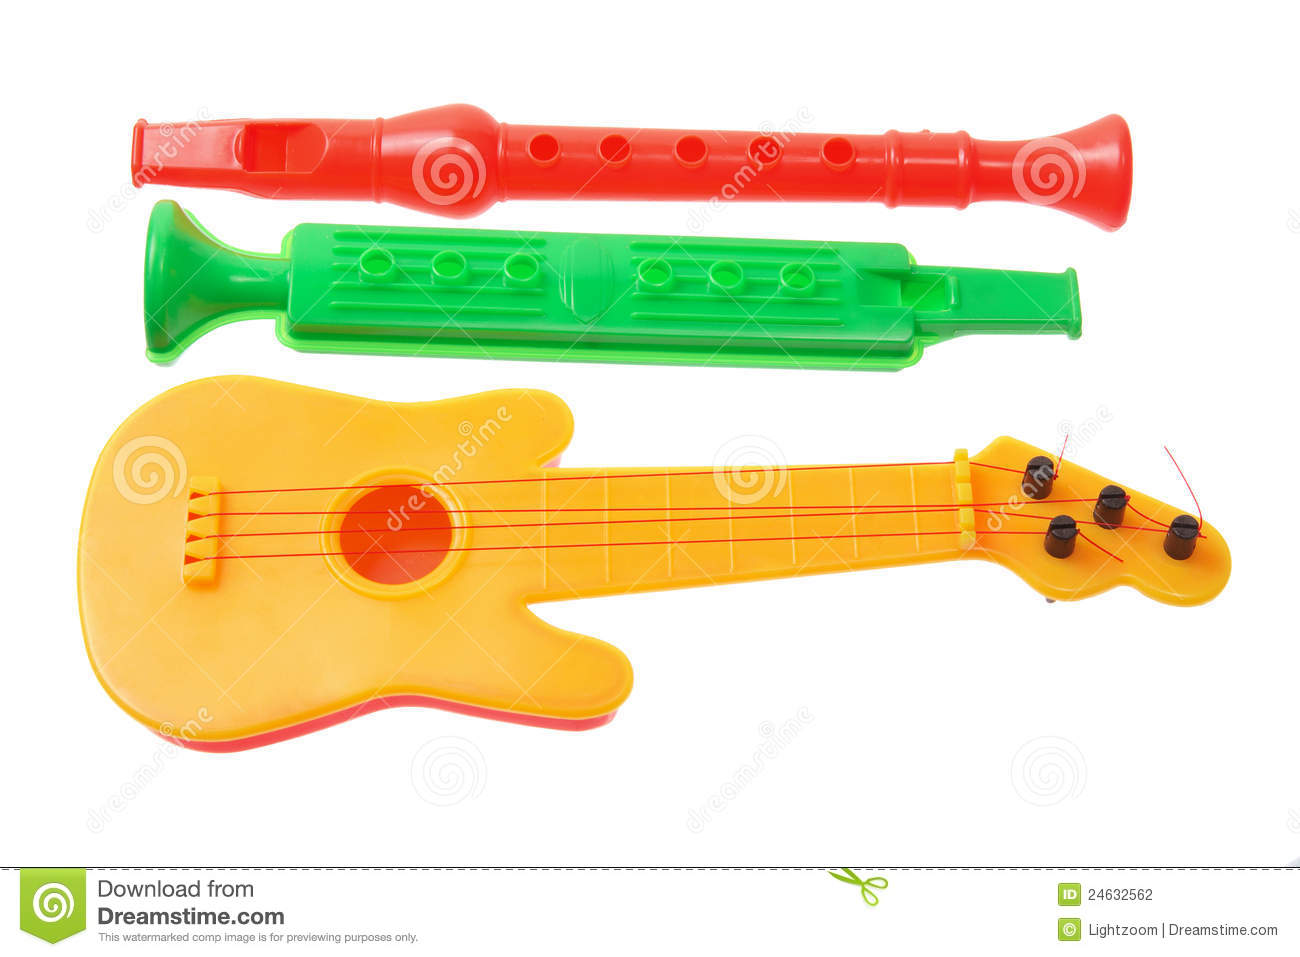 Toy Musical Instruments : Toy musical instruments stock photography image